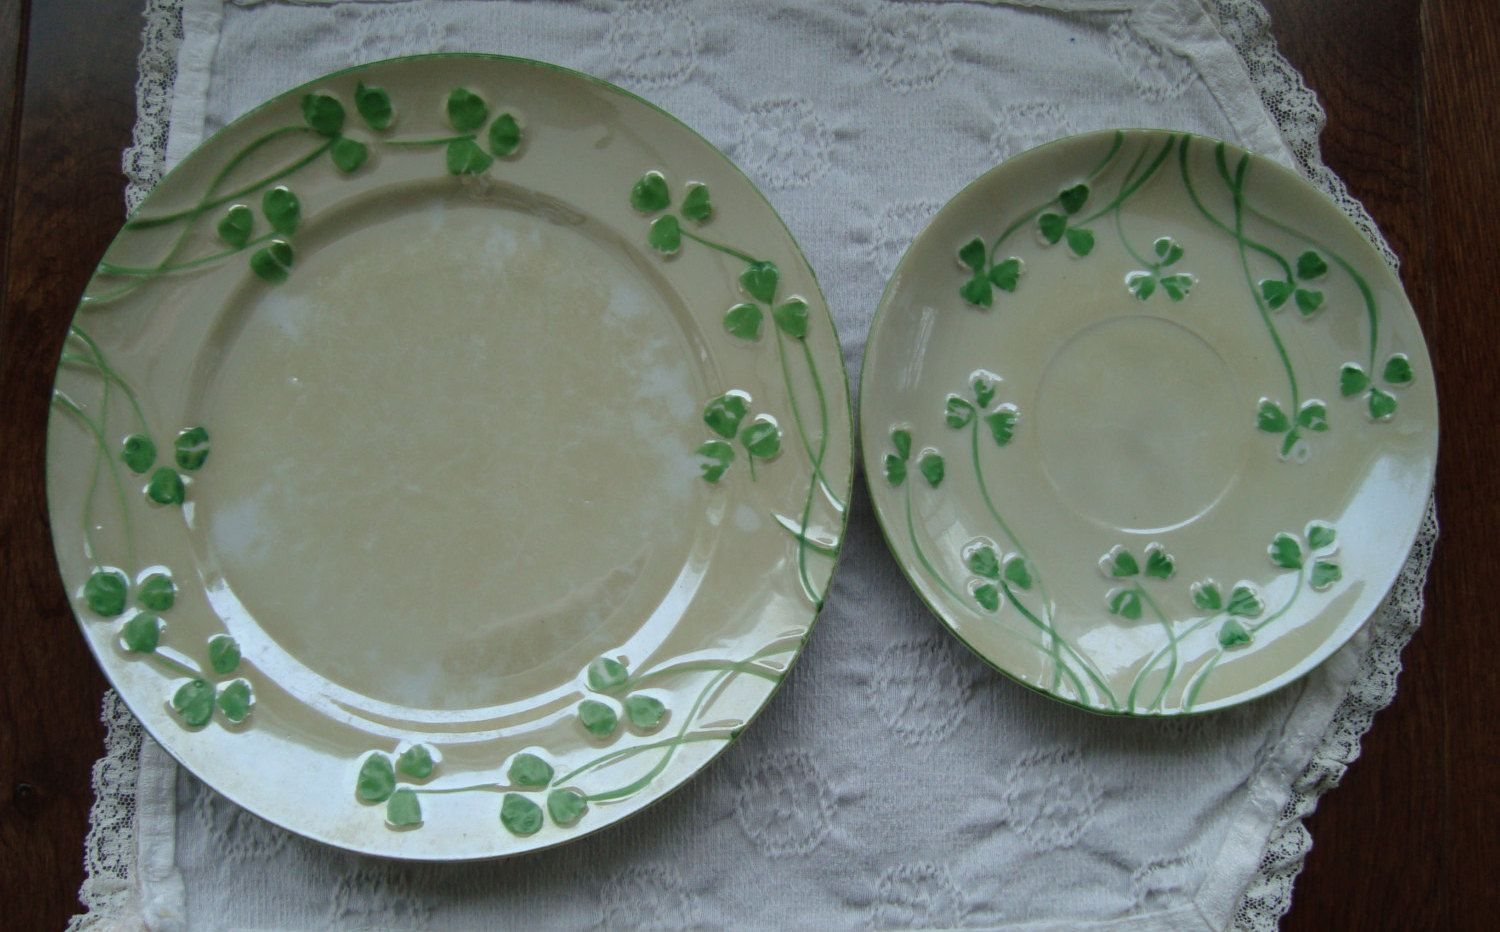 Erins Hand Painted China - Two Vintage Irish Plates Salad Plate and Saucer - Pale & Erins Hand Painted China - Two Vintage Irish Plates: Salad Plate and ...